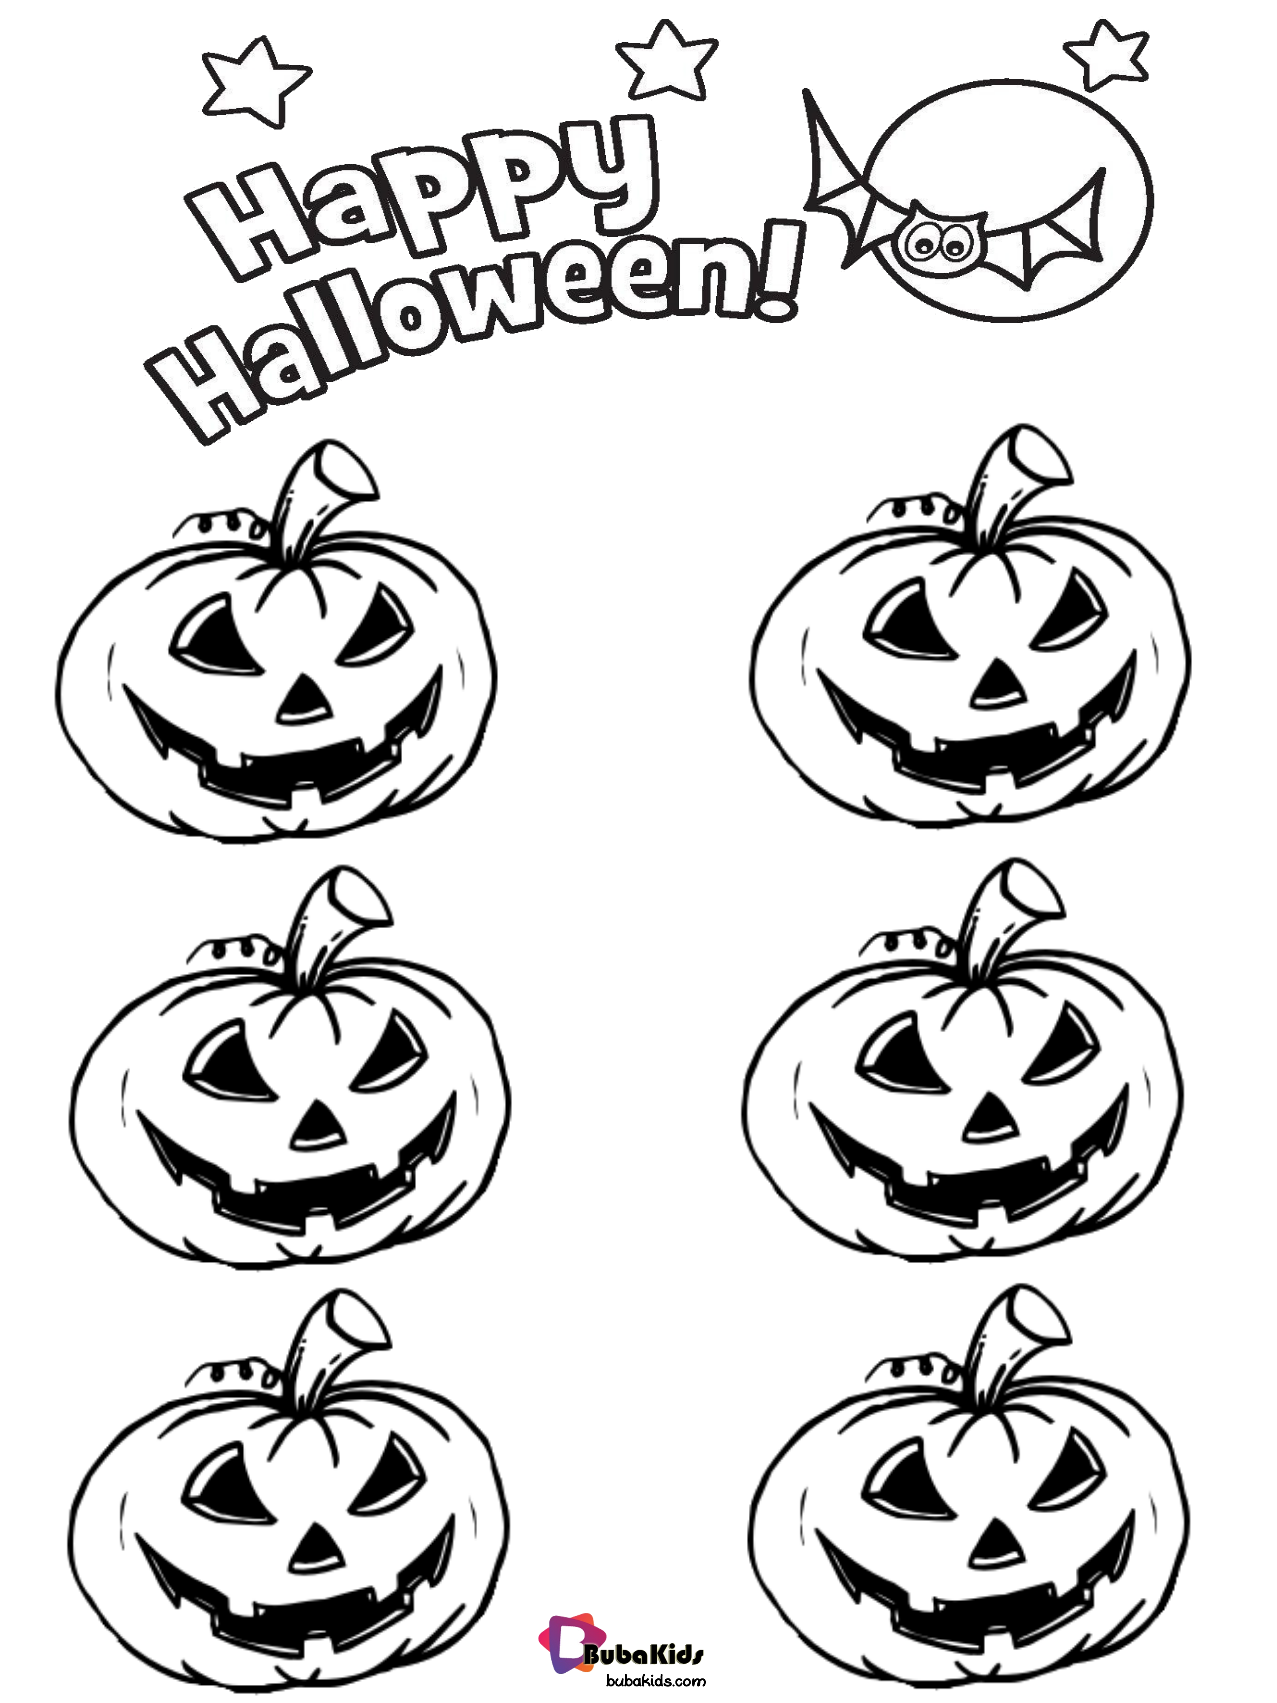 Jack o lantern pumpkins happy halloween coloring pages